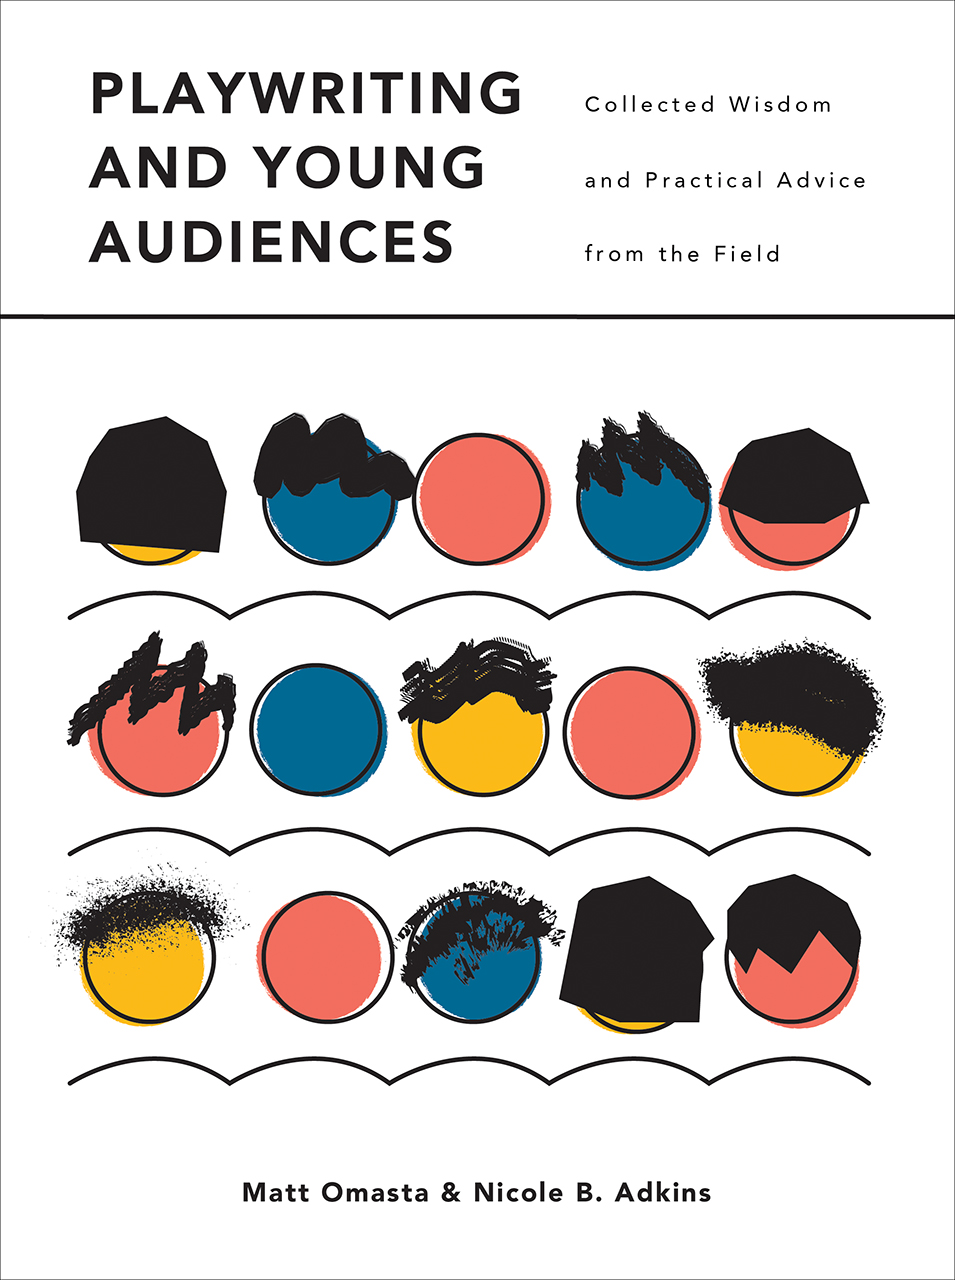 Playwriting and Young Audiences: Collected Wisdom and Practical Advice from the Field